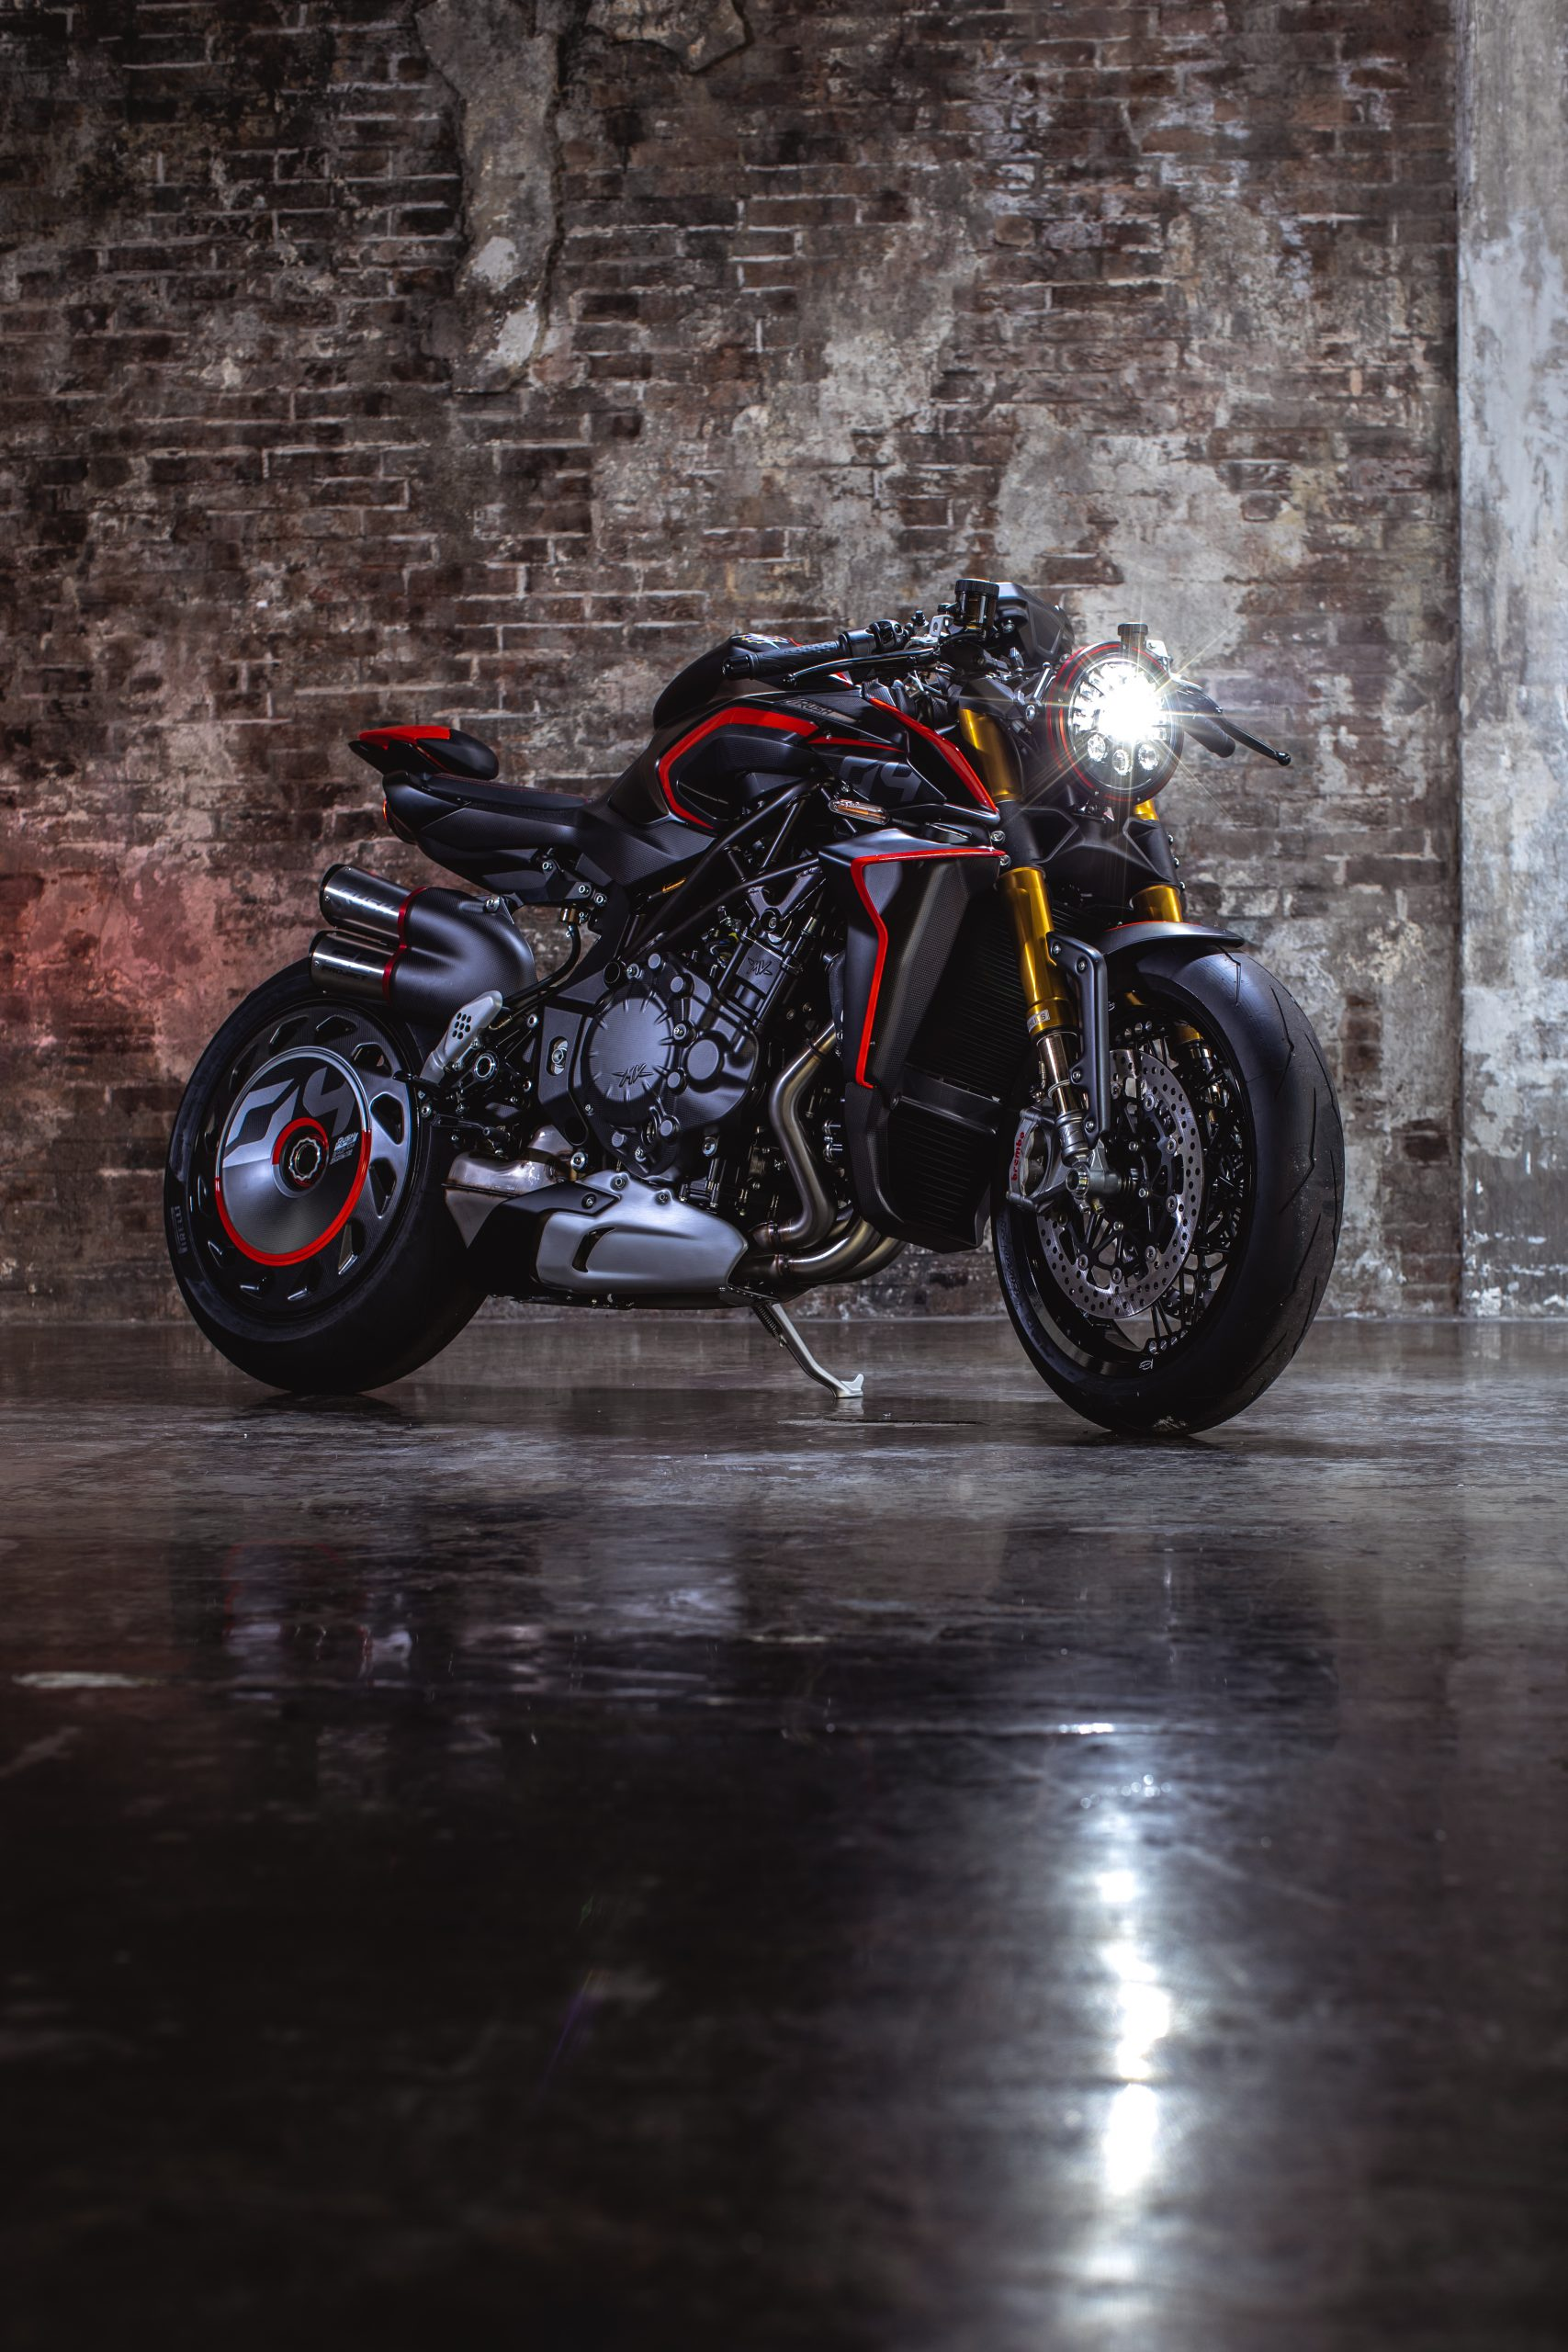 Rush 1000, The Hyper-Naked Motorcycle, By MV Agusta To